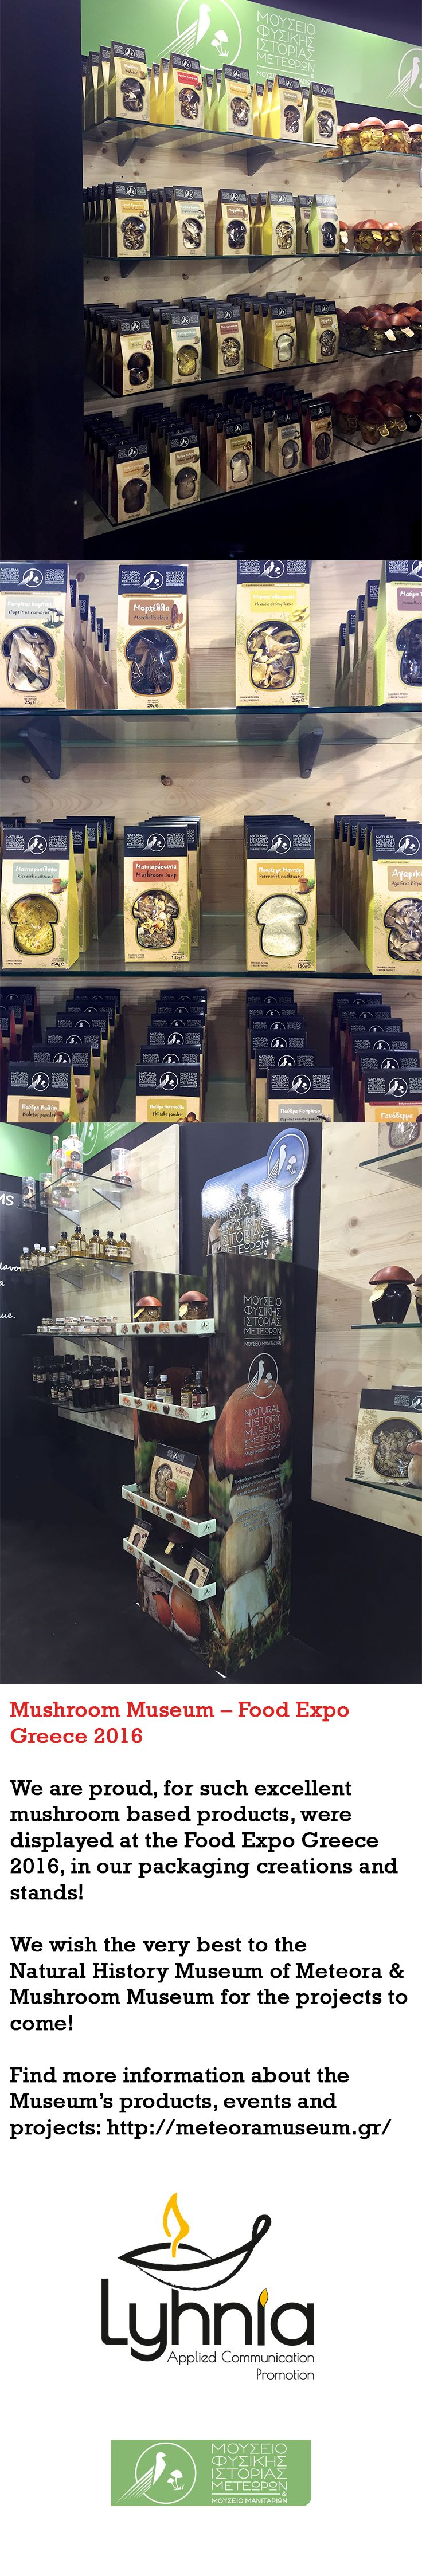 Mushroom Museum – Food Expo Greece 2016  We are proud, for such excellent mushroom based products, were displayed at the Food Expo Greece 2016, in our packaging creations and stands! We wish the very best to the Natural History Museum of Meteora & Mushroom Museum for the projects to come!  Find more information about the Museum's products, events and projects: http://meteoramuseum.gr/